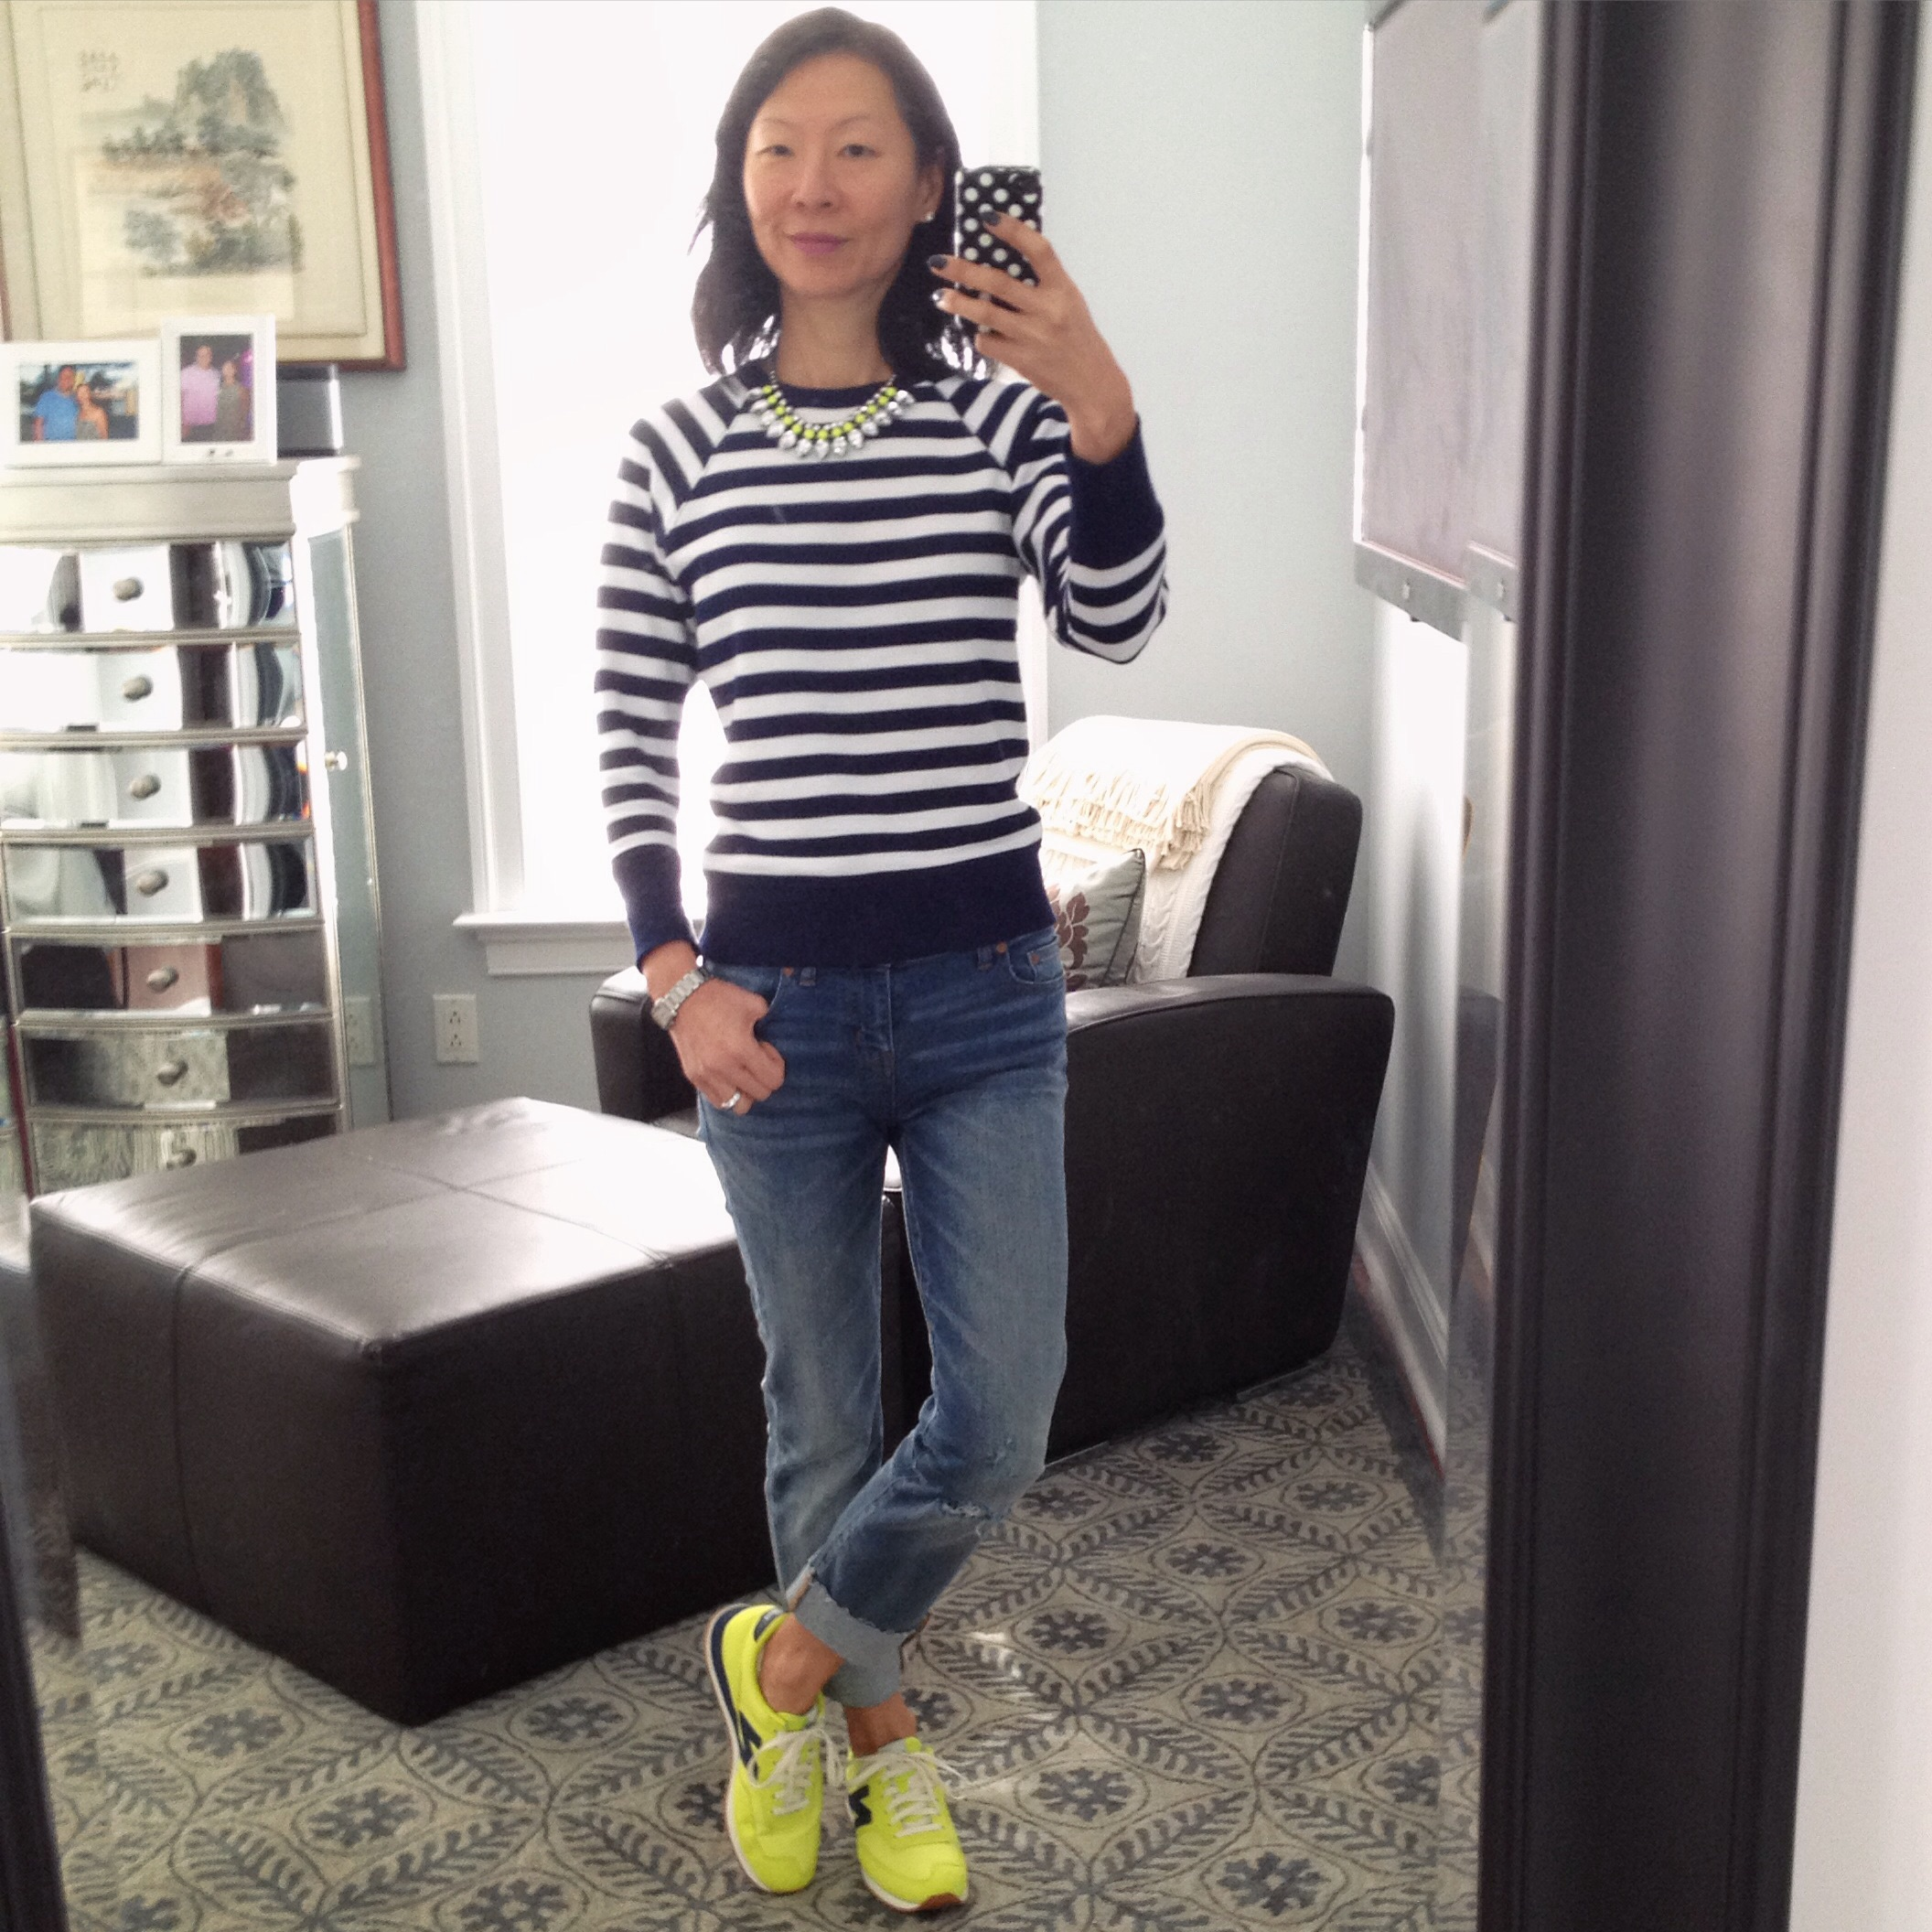 290e9a5c1fb9d J.Crew striped sweatshirt (similar); Madewell Alley straight crop jeans:  drop-hem edition (old, similar); New Balance for J.Crew 620 sneakers in  neon citrus ...